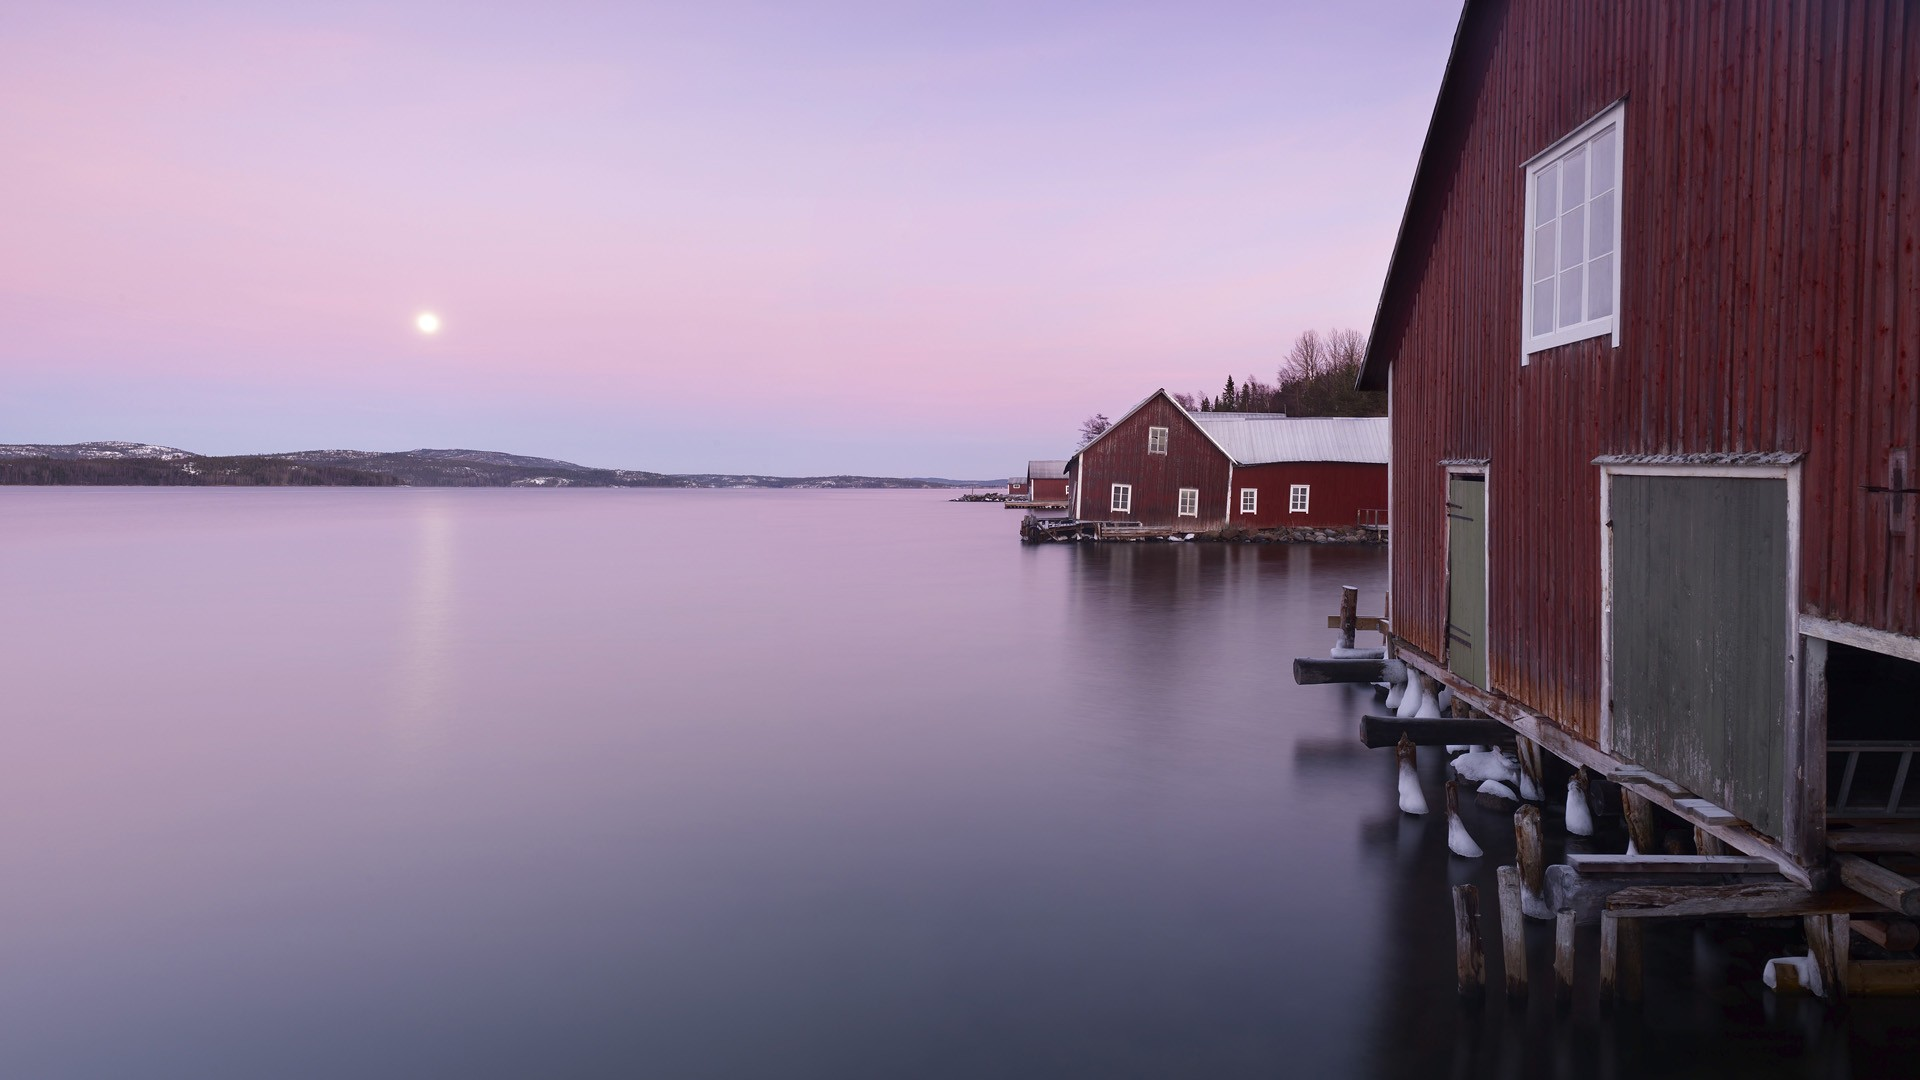 smogen sweden hd wallpaper download sweden images free